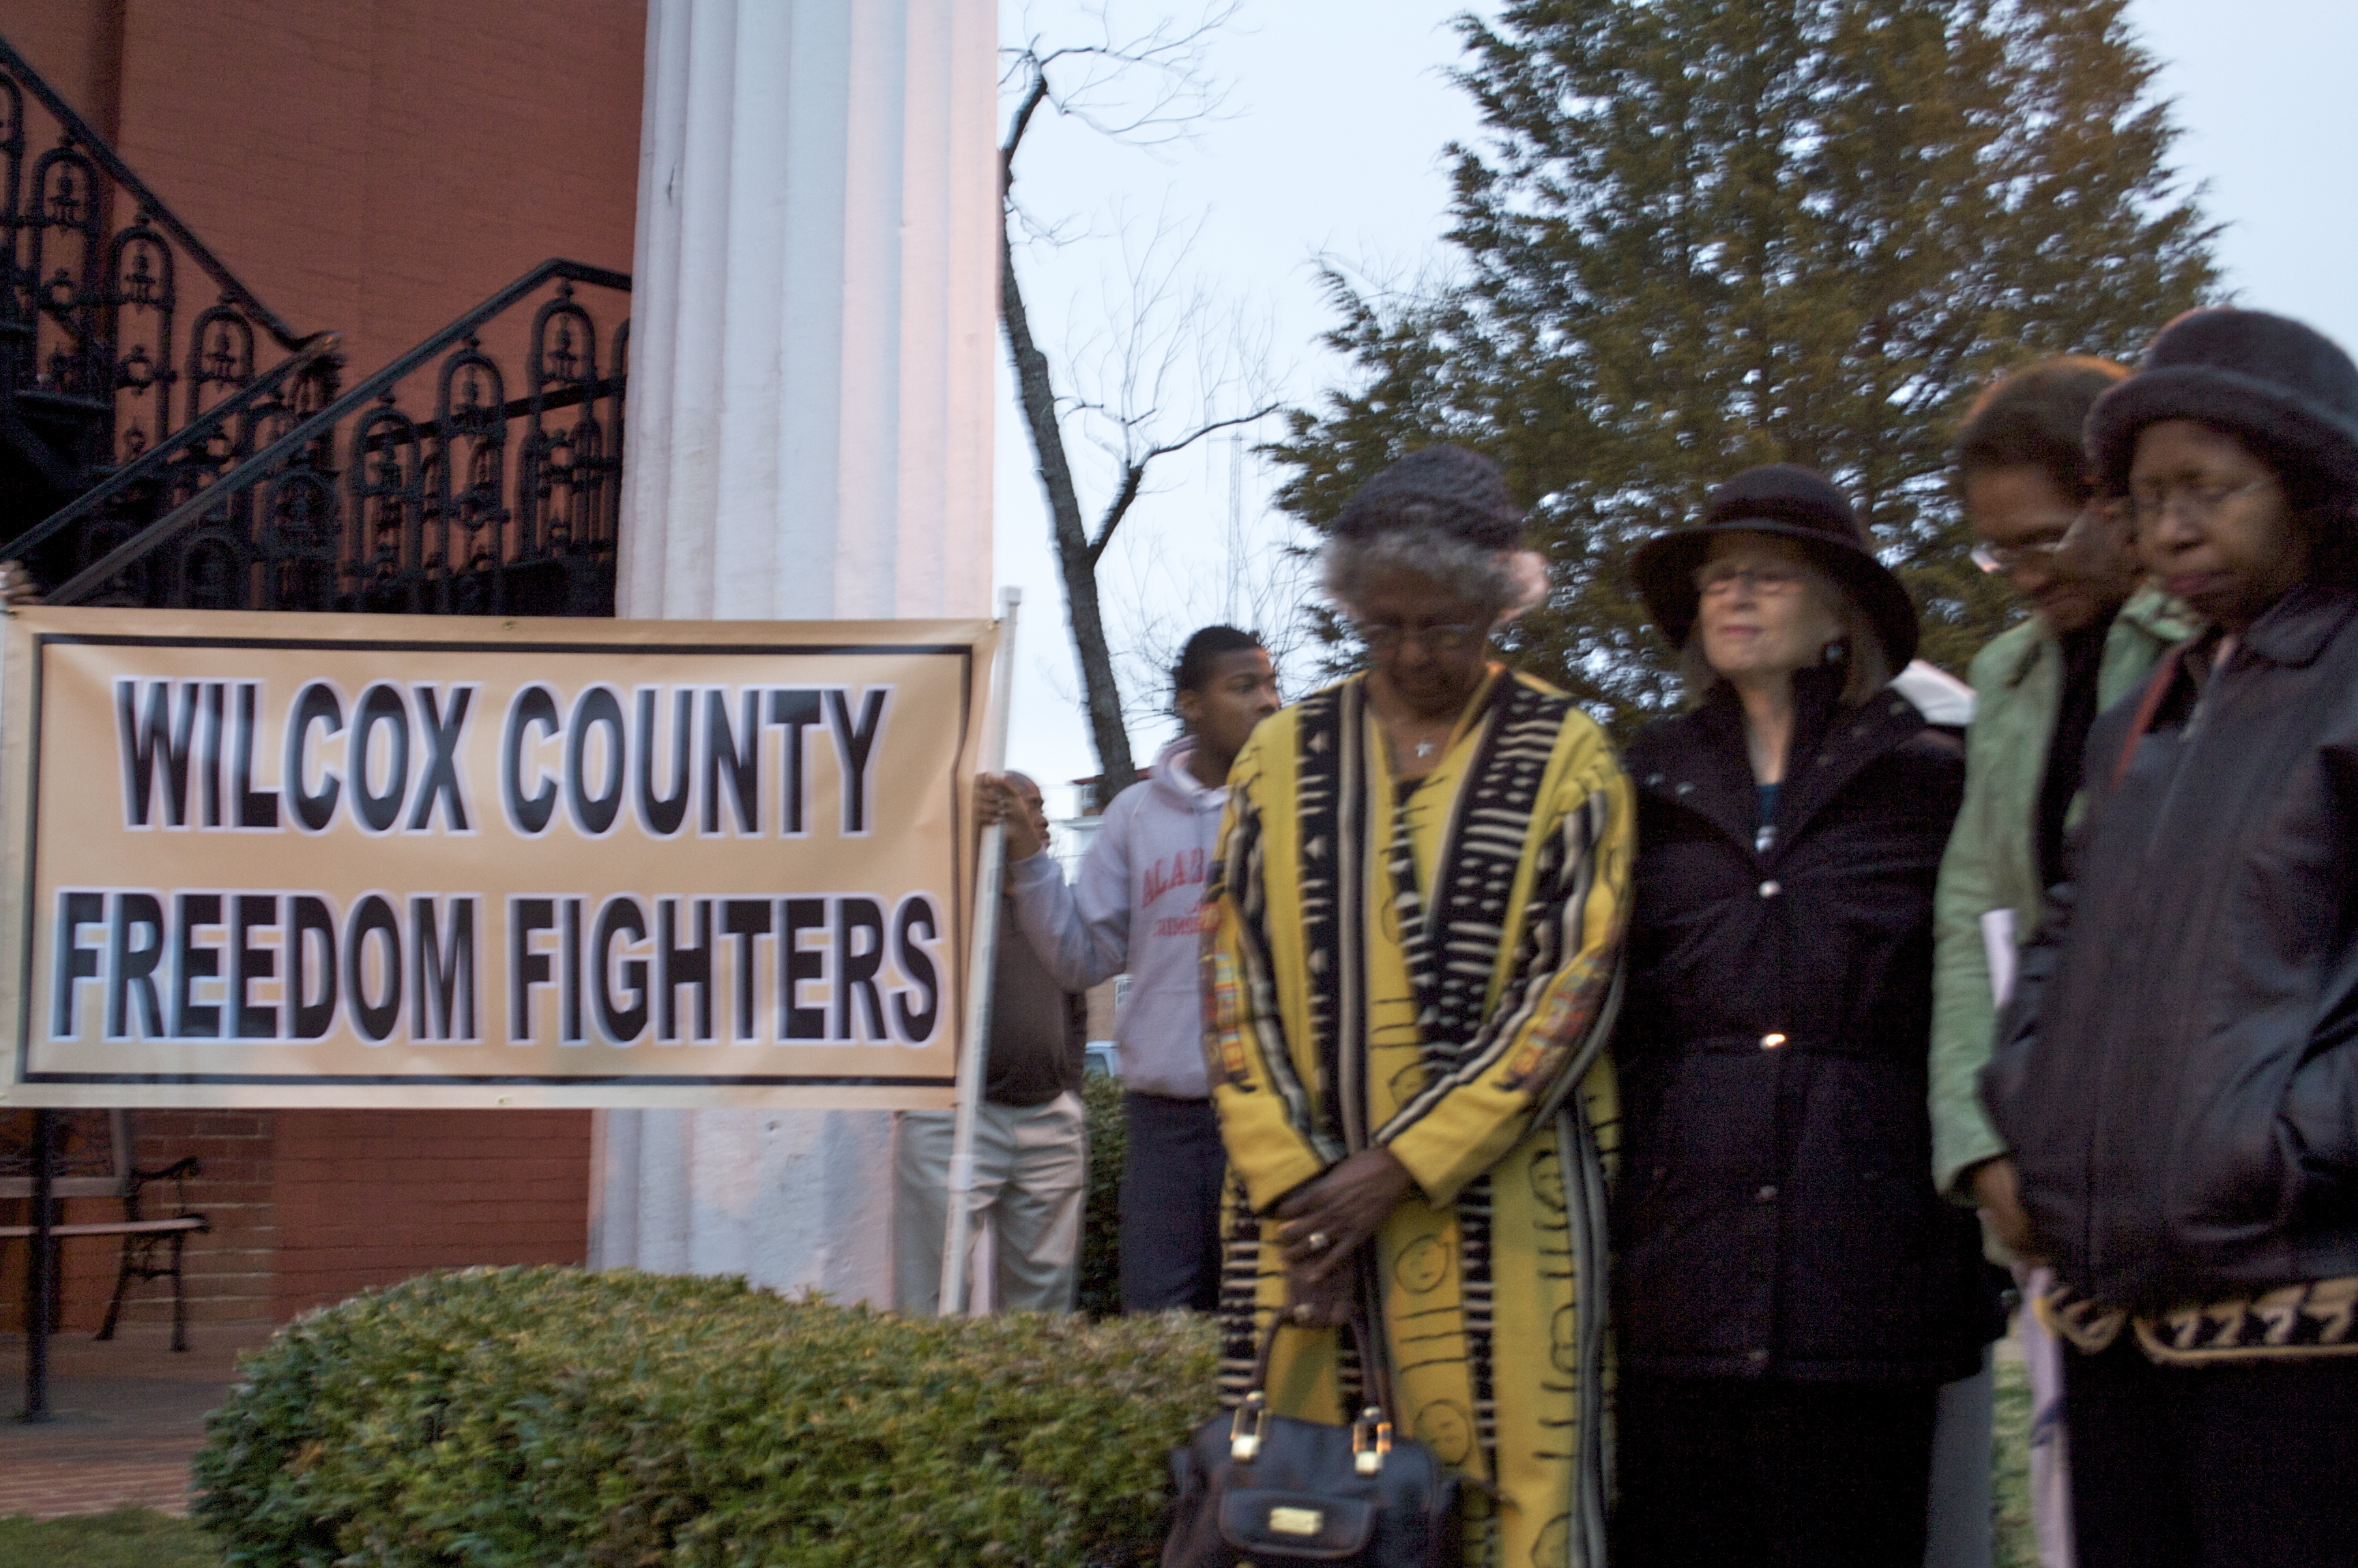 Alabama wilcox county camden - Memorial For Civil Rights Activists At Wilcox County Courthouse